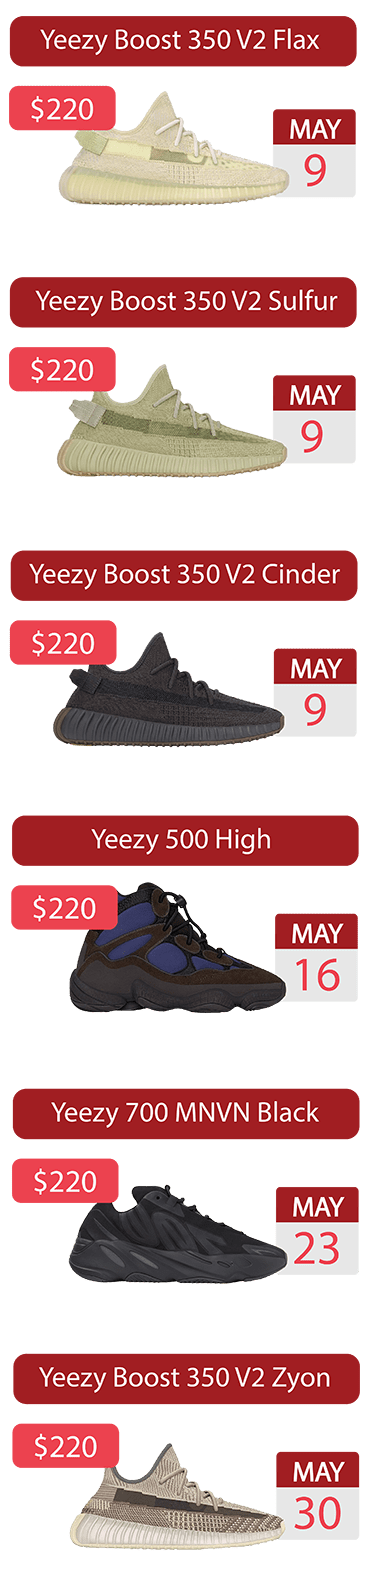 Yeezy sneakers - New yeezy